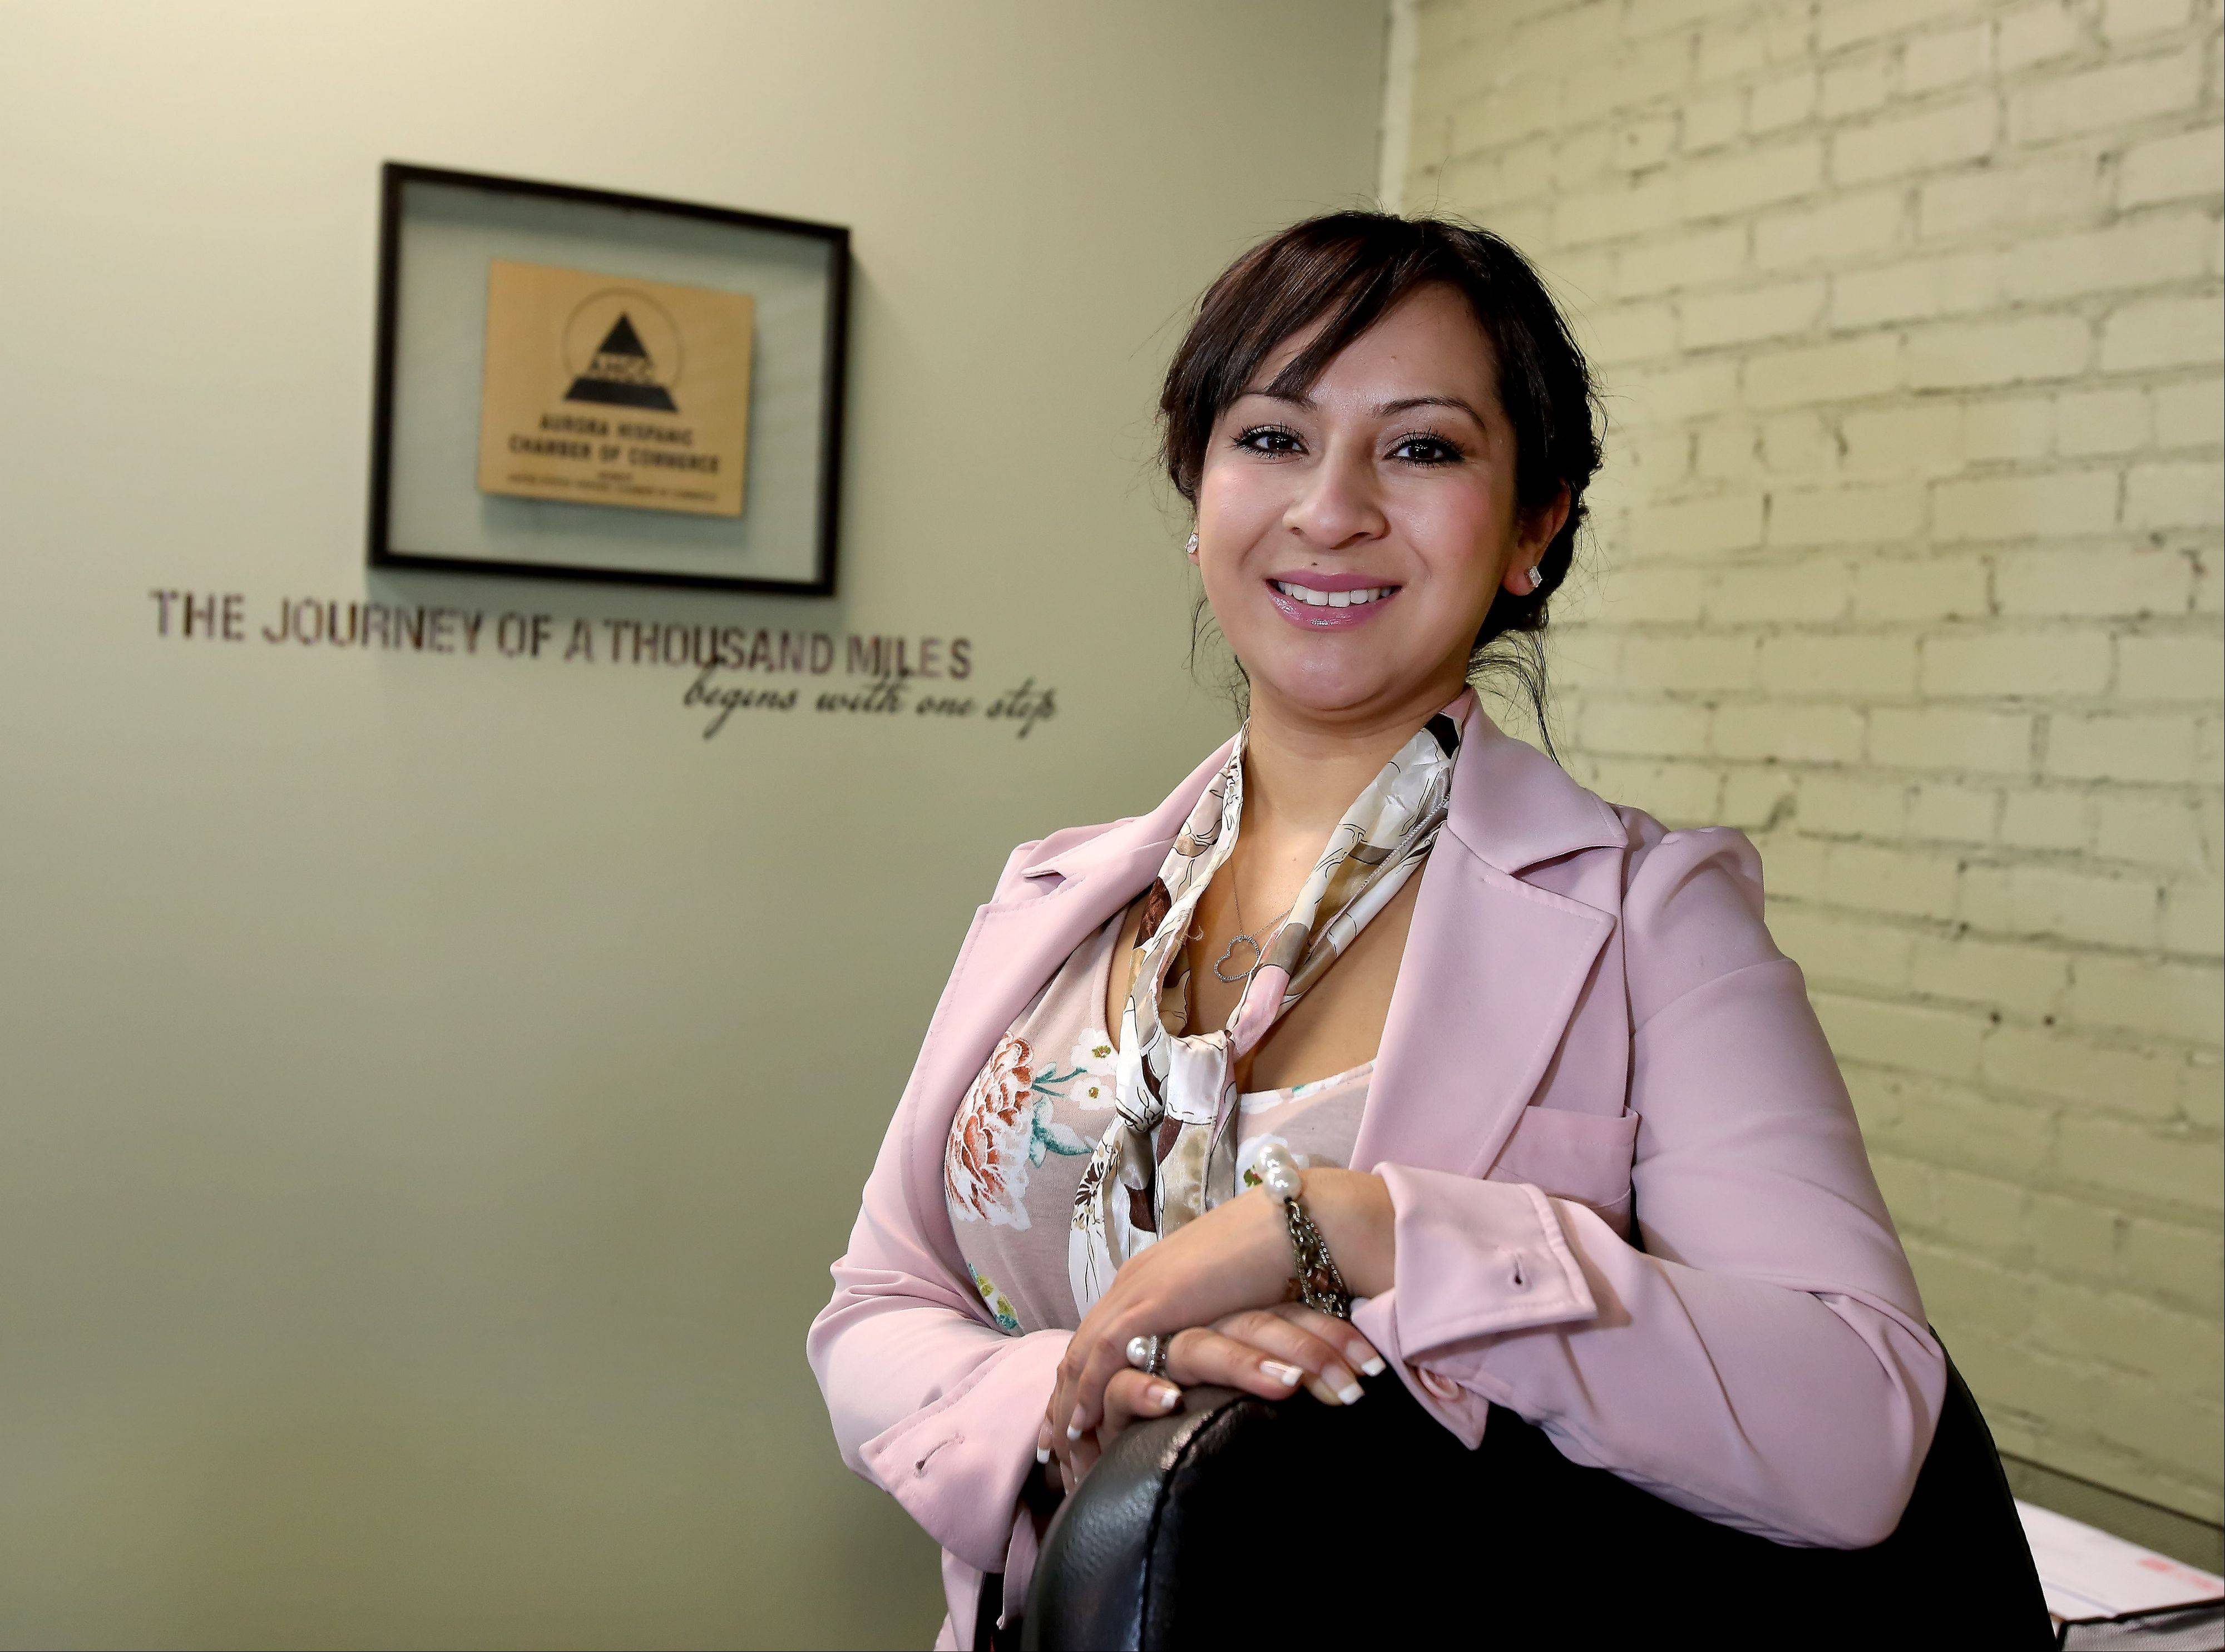 Karina Garcia is the new executive director of the Aurora Hispanic Chamber of Commerce. Garcia, 31, takes over from Interim Executive Director Jerry Campagna.